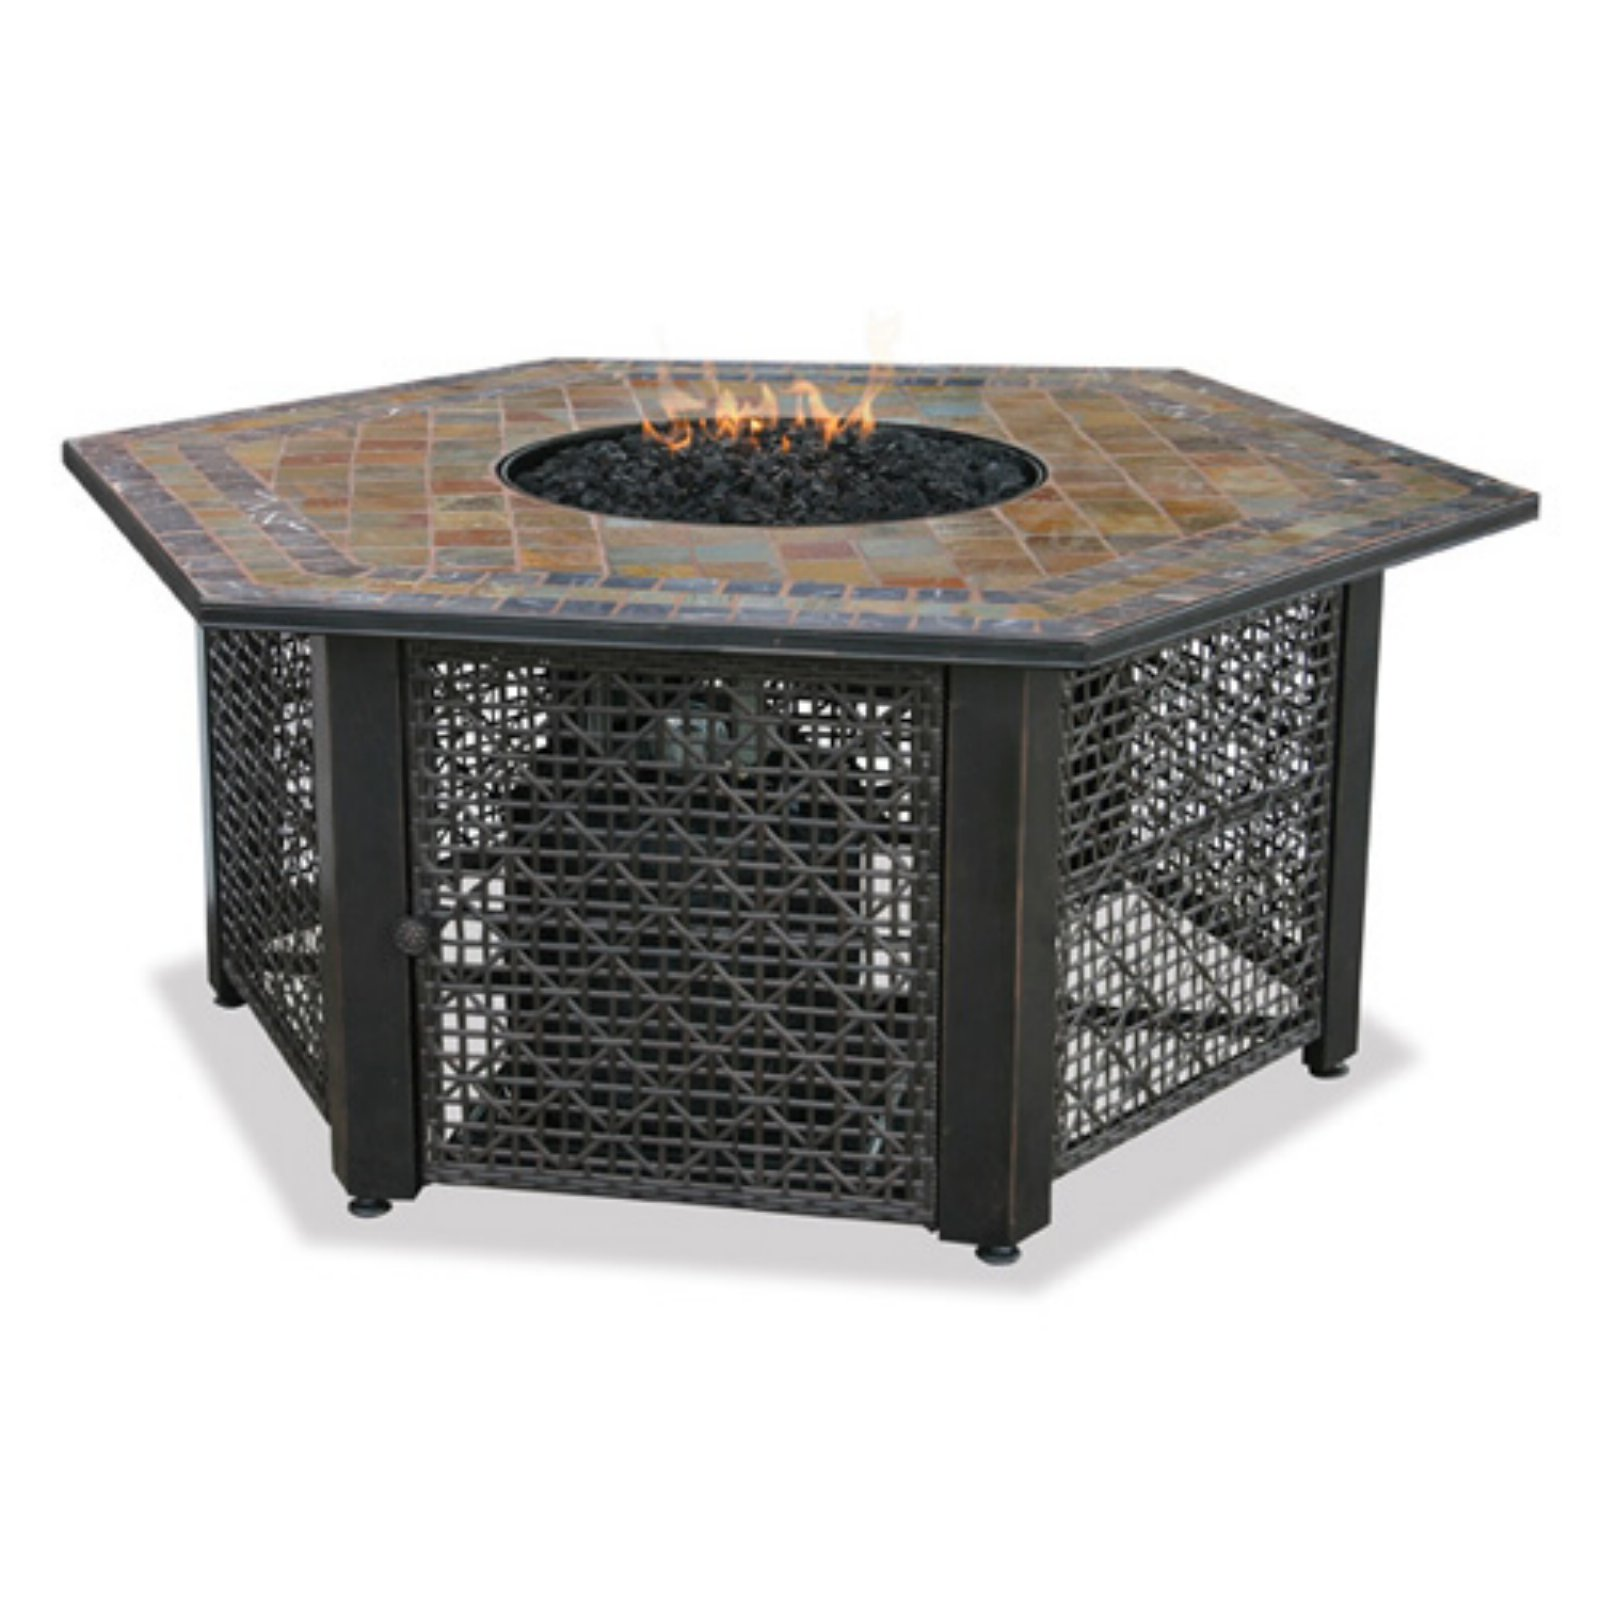 Endless Summer Hexagon Lp Gas Fire Table With Slate Tile Mantel Walmart Com Walmart Com